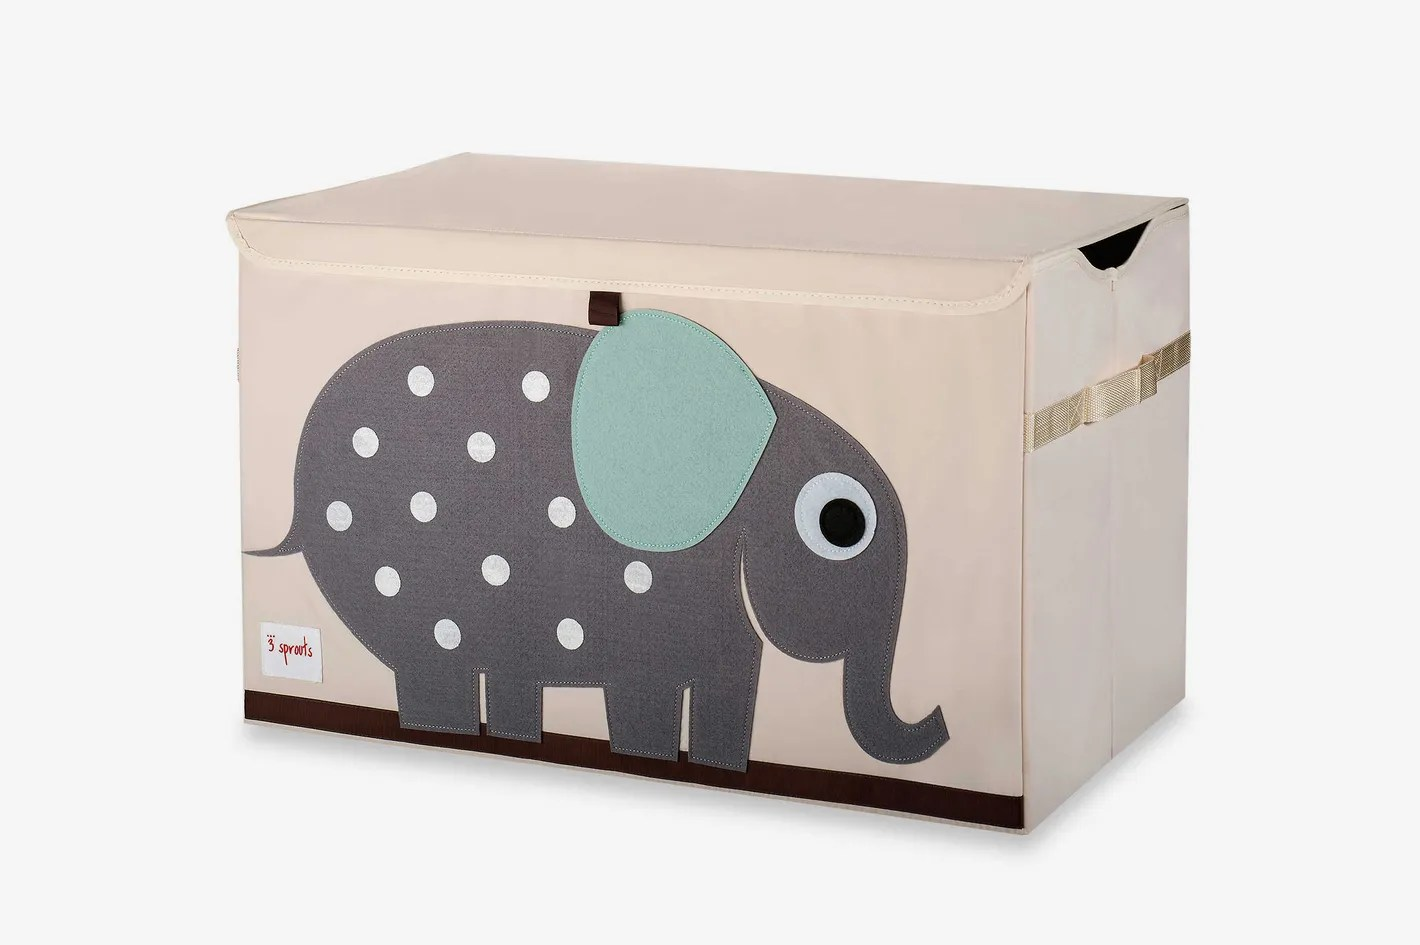 Toy Chests 3 Sprouts Toy Chest In Elephant